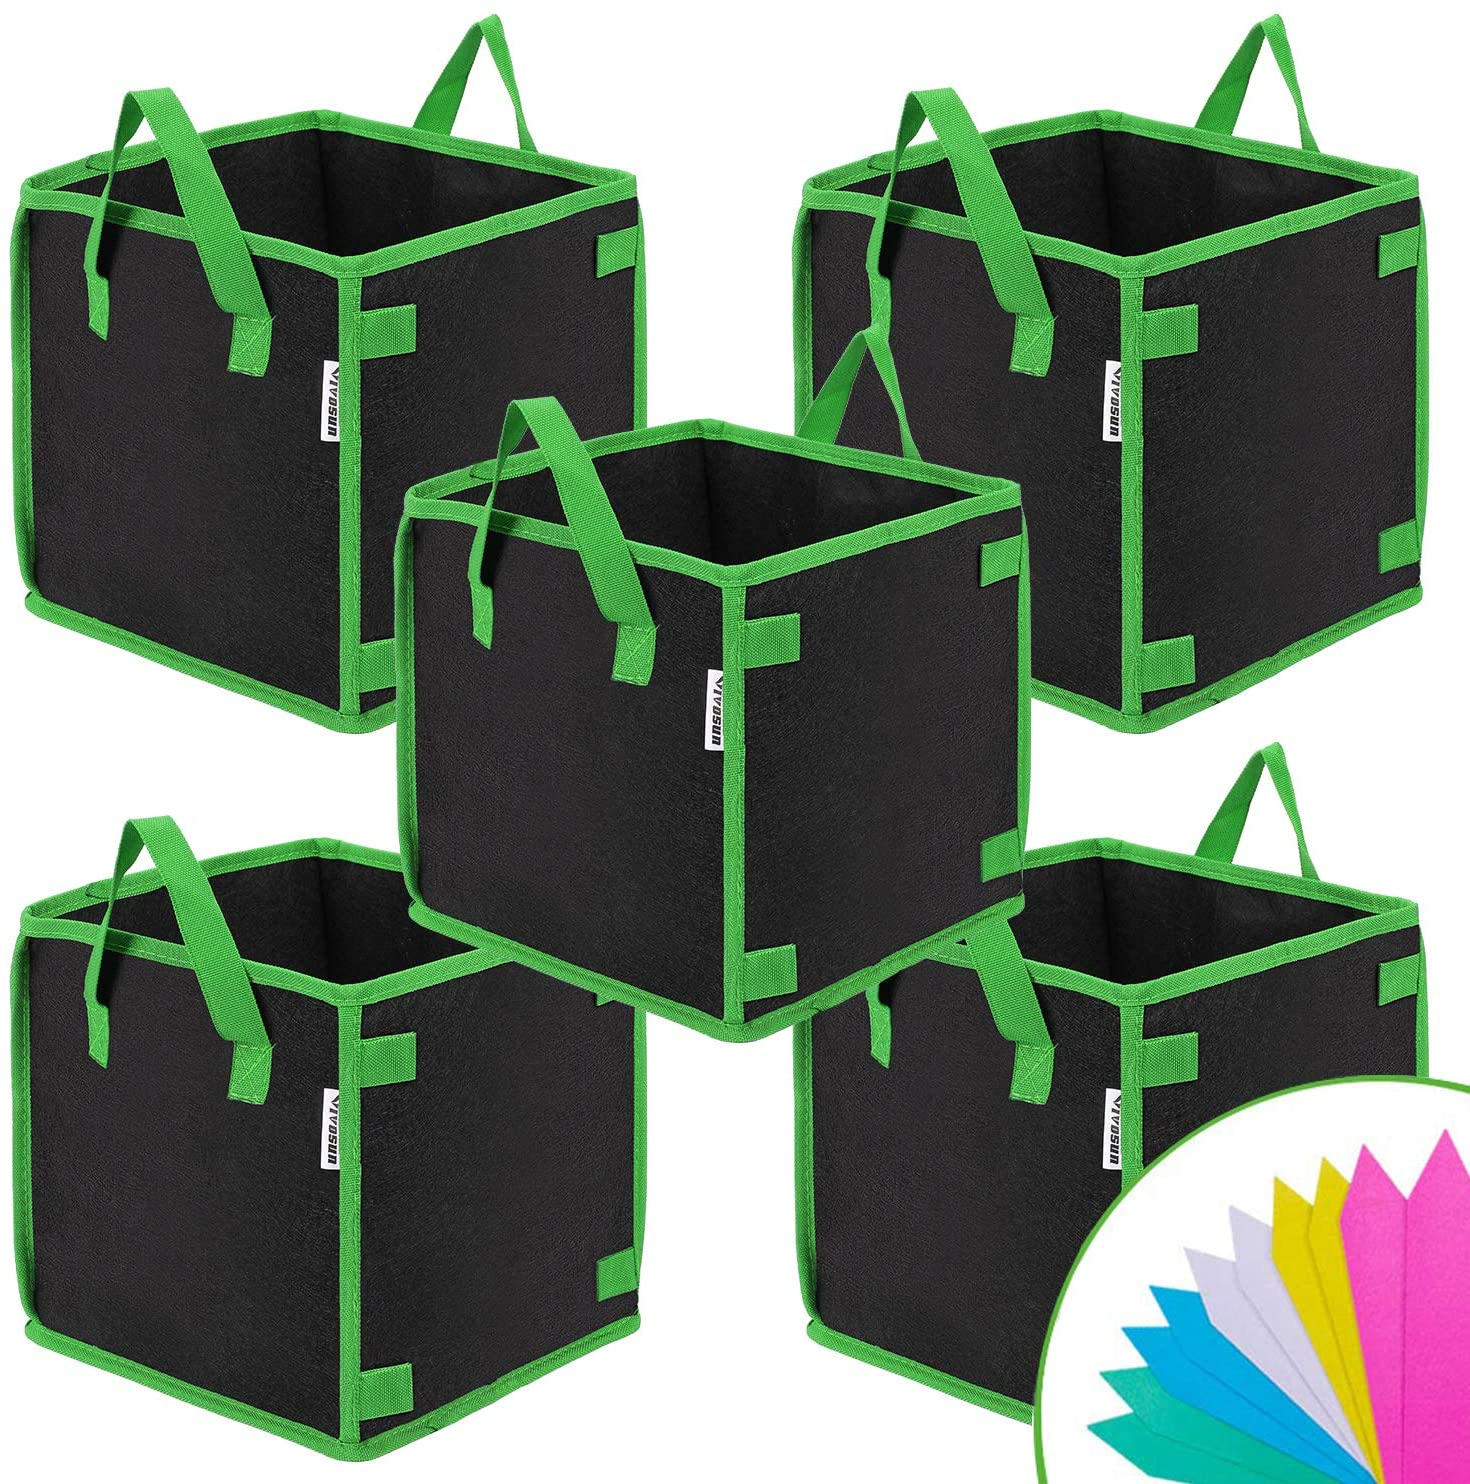 VIVOSUN Grow Bags Square with Pole Holder 5-pack - VIVOSUN